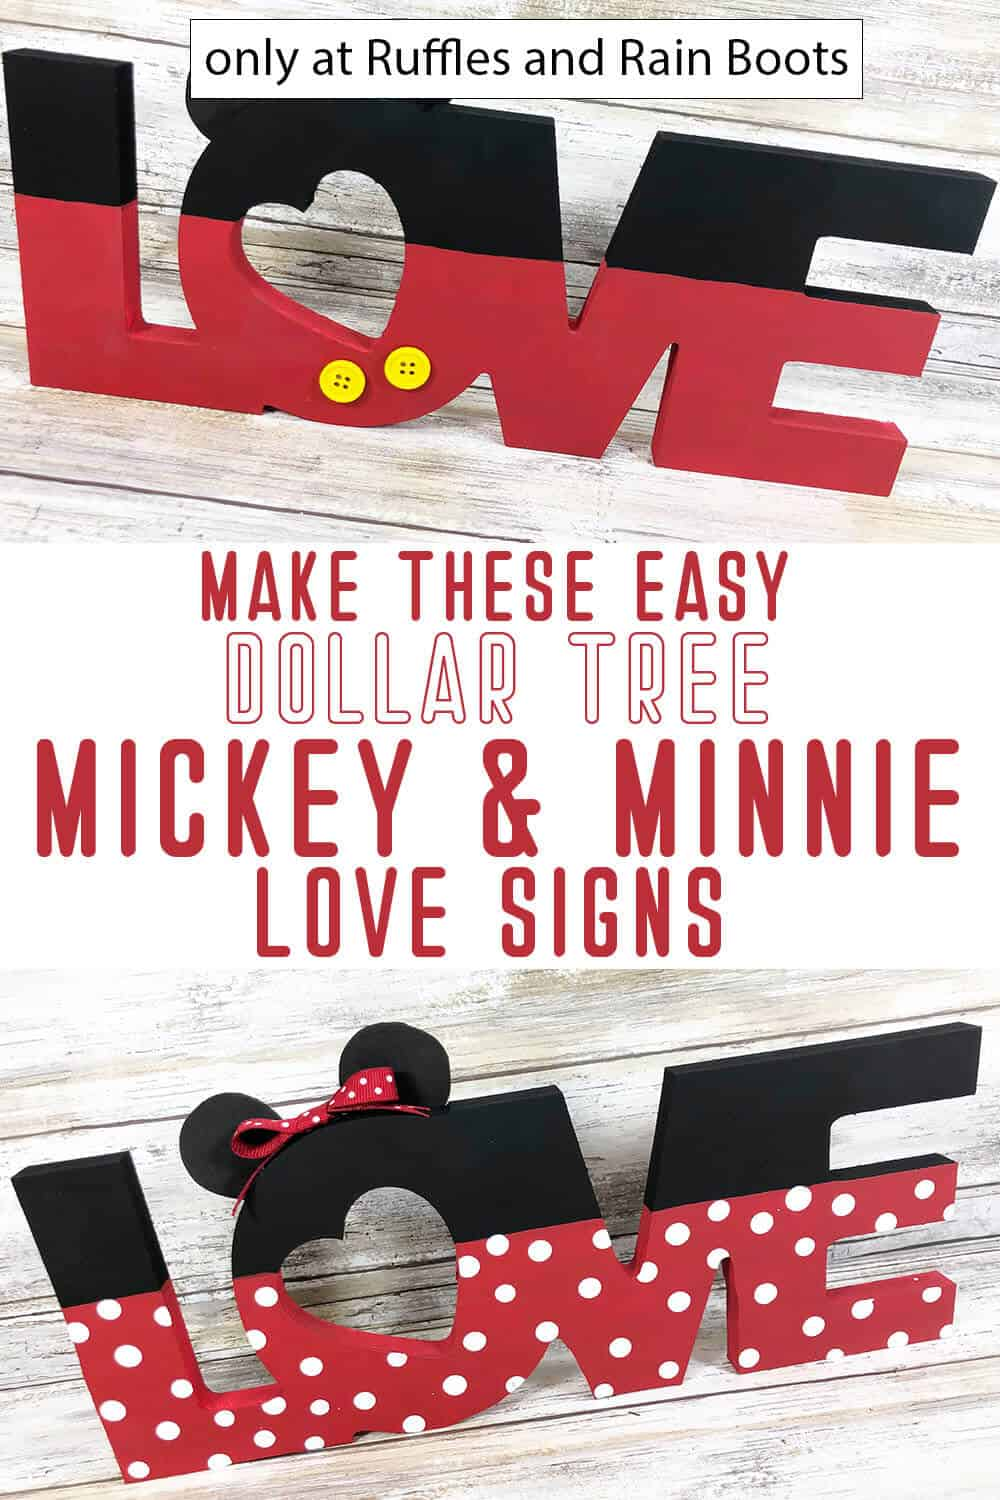 photo collage of mickey and minnie love sign dollar tree craft for valentines with text which reads make these easy dollar tree mickey & minnie love signs